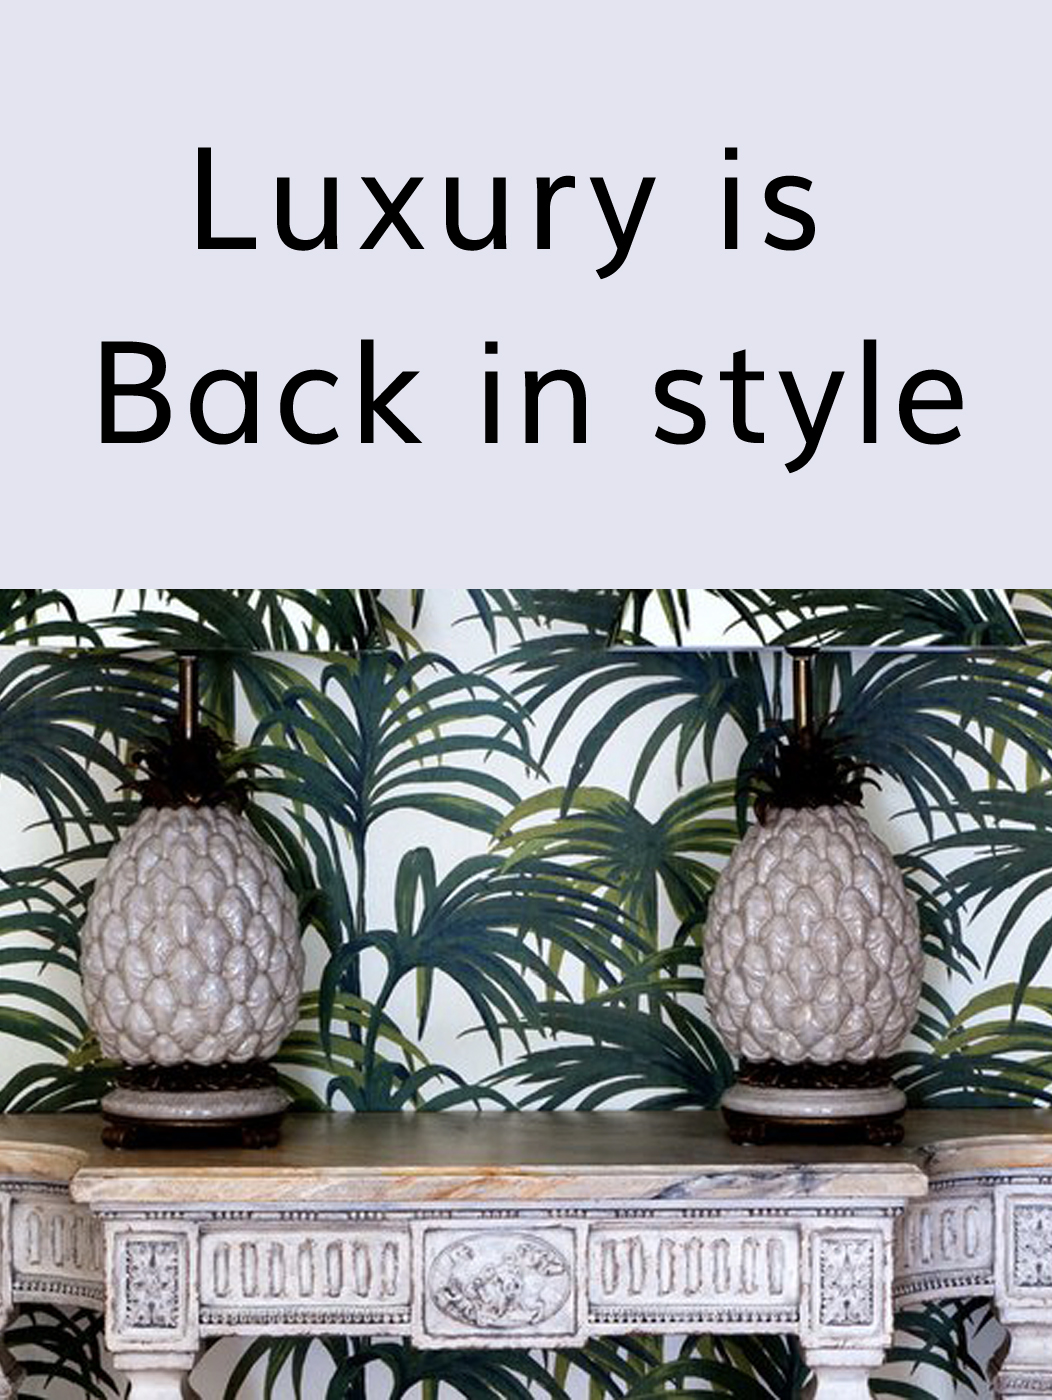 Luxury in best in style quote with tropical wallpaper and pineapple table lamps